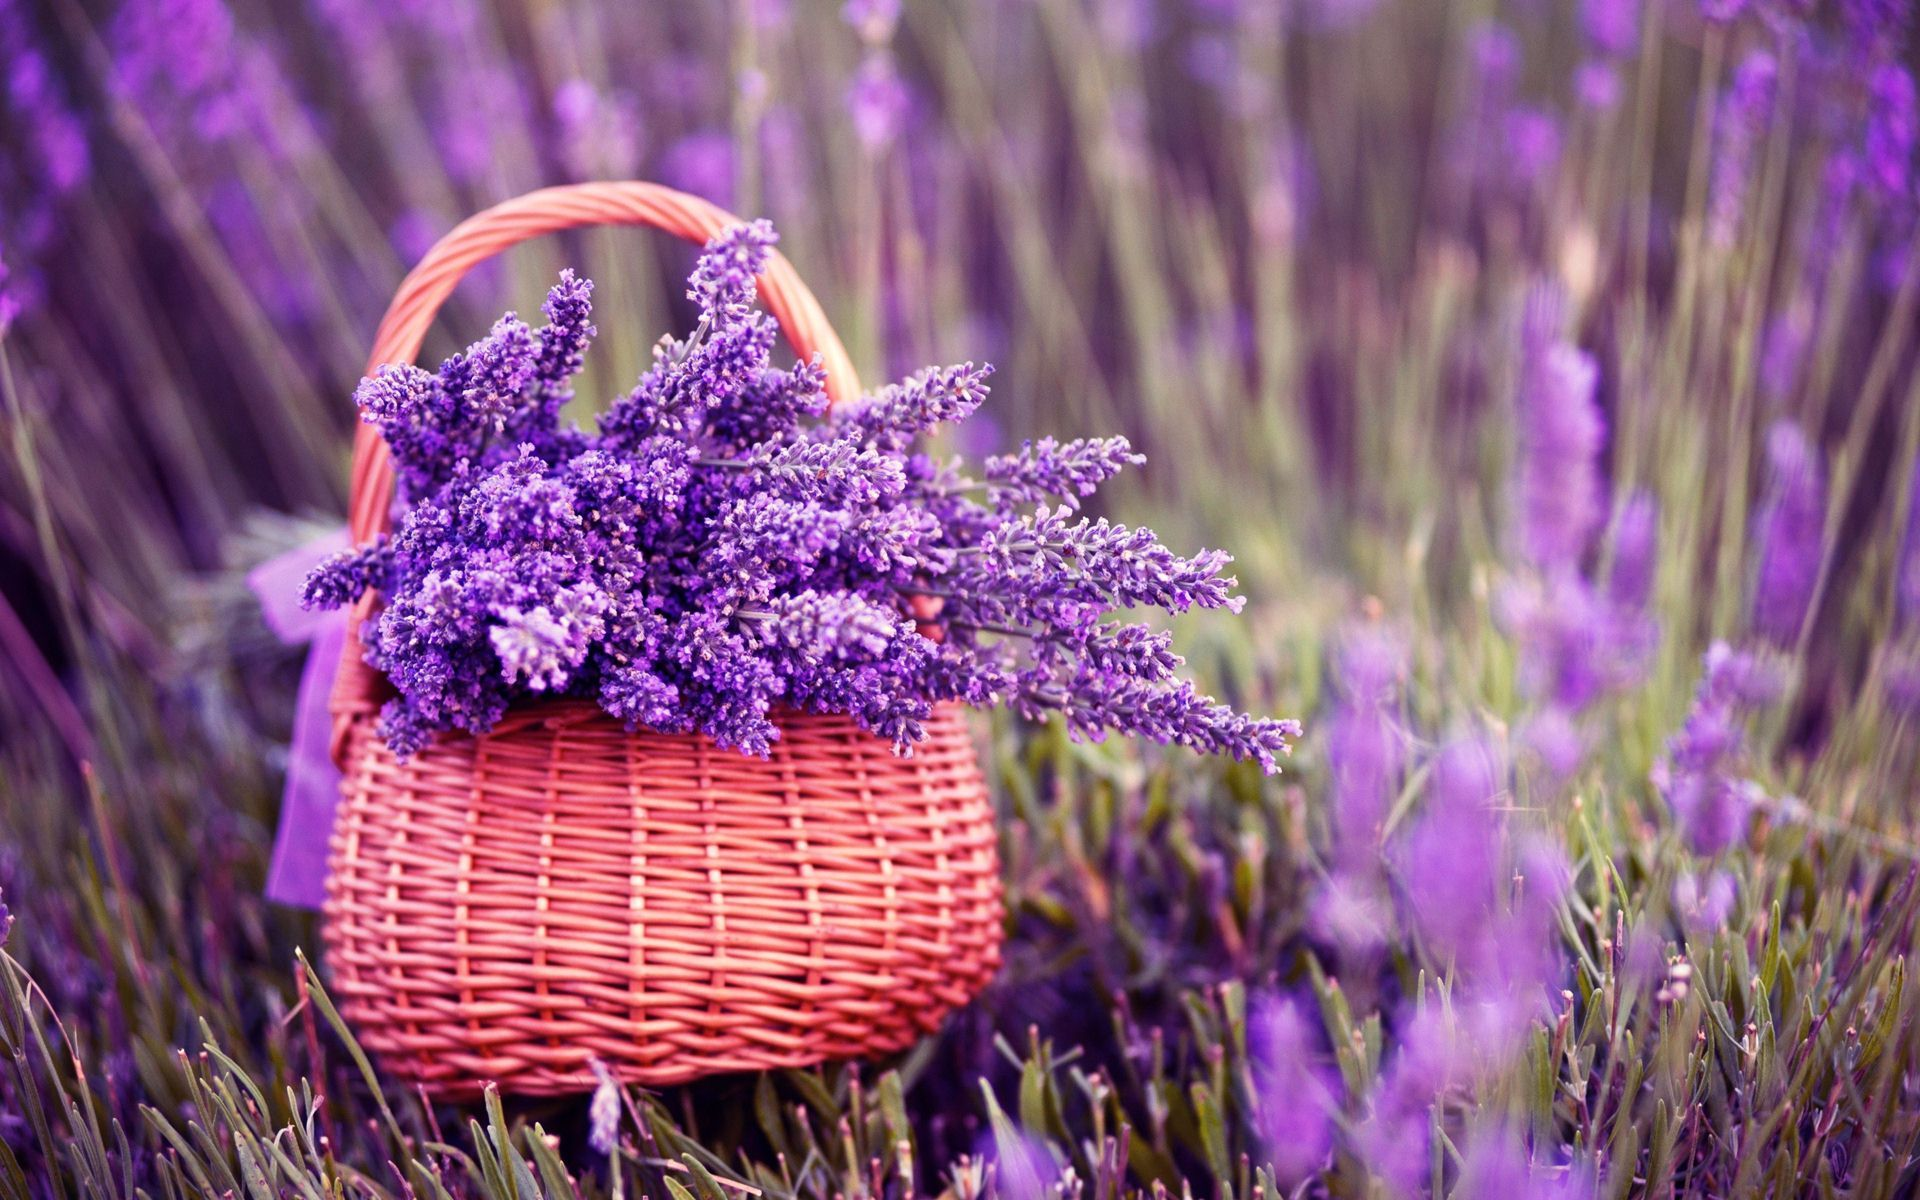 Purple Lavender Flowers In Basket Images Buy Flowers Online Lavender Basket Lavender Flowers